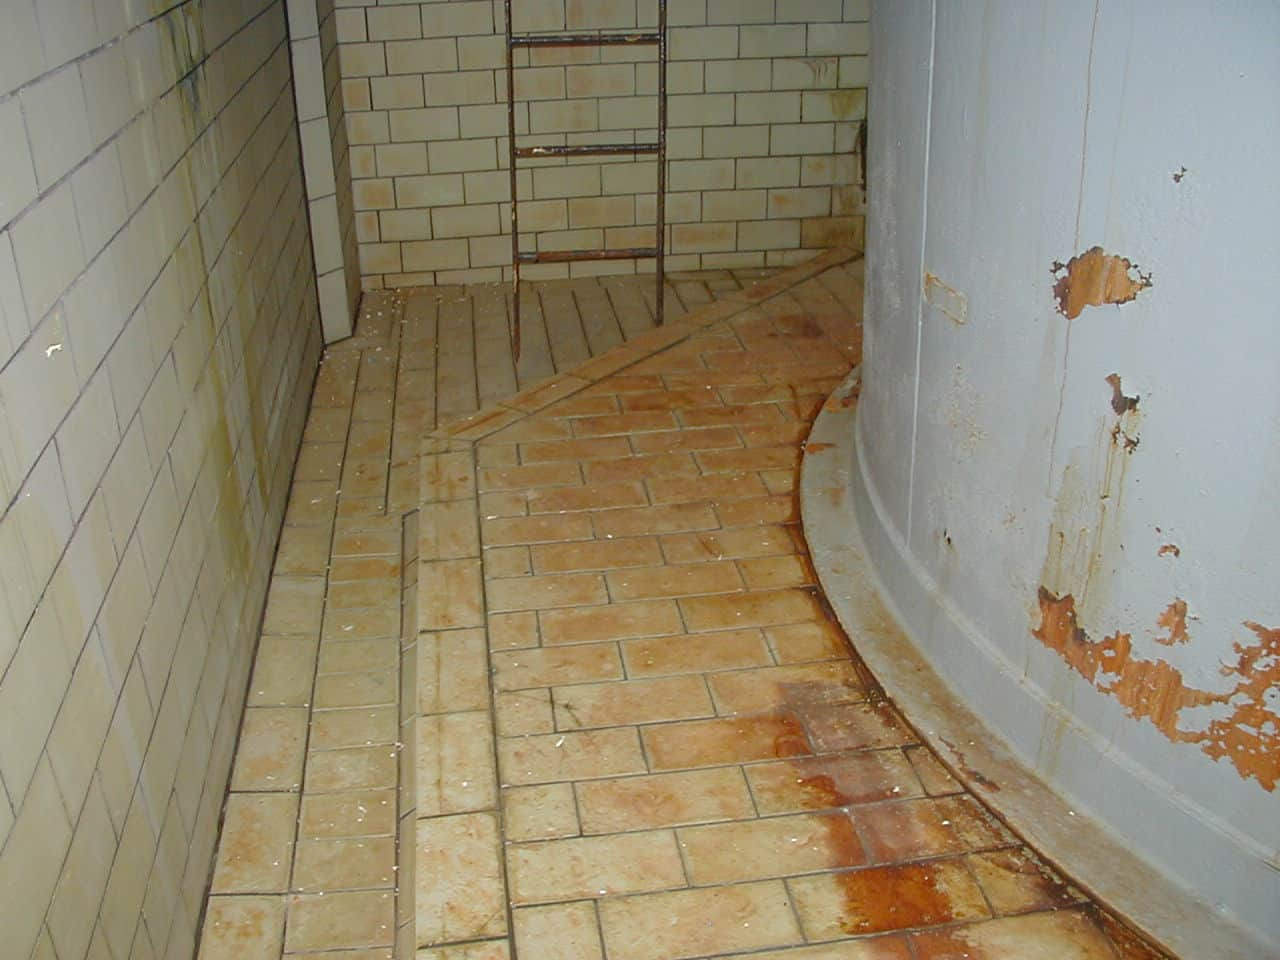 heavily rusted internal floor and bunded wall